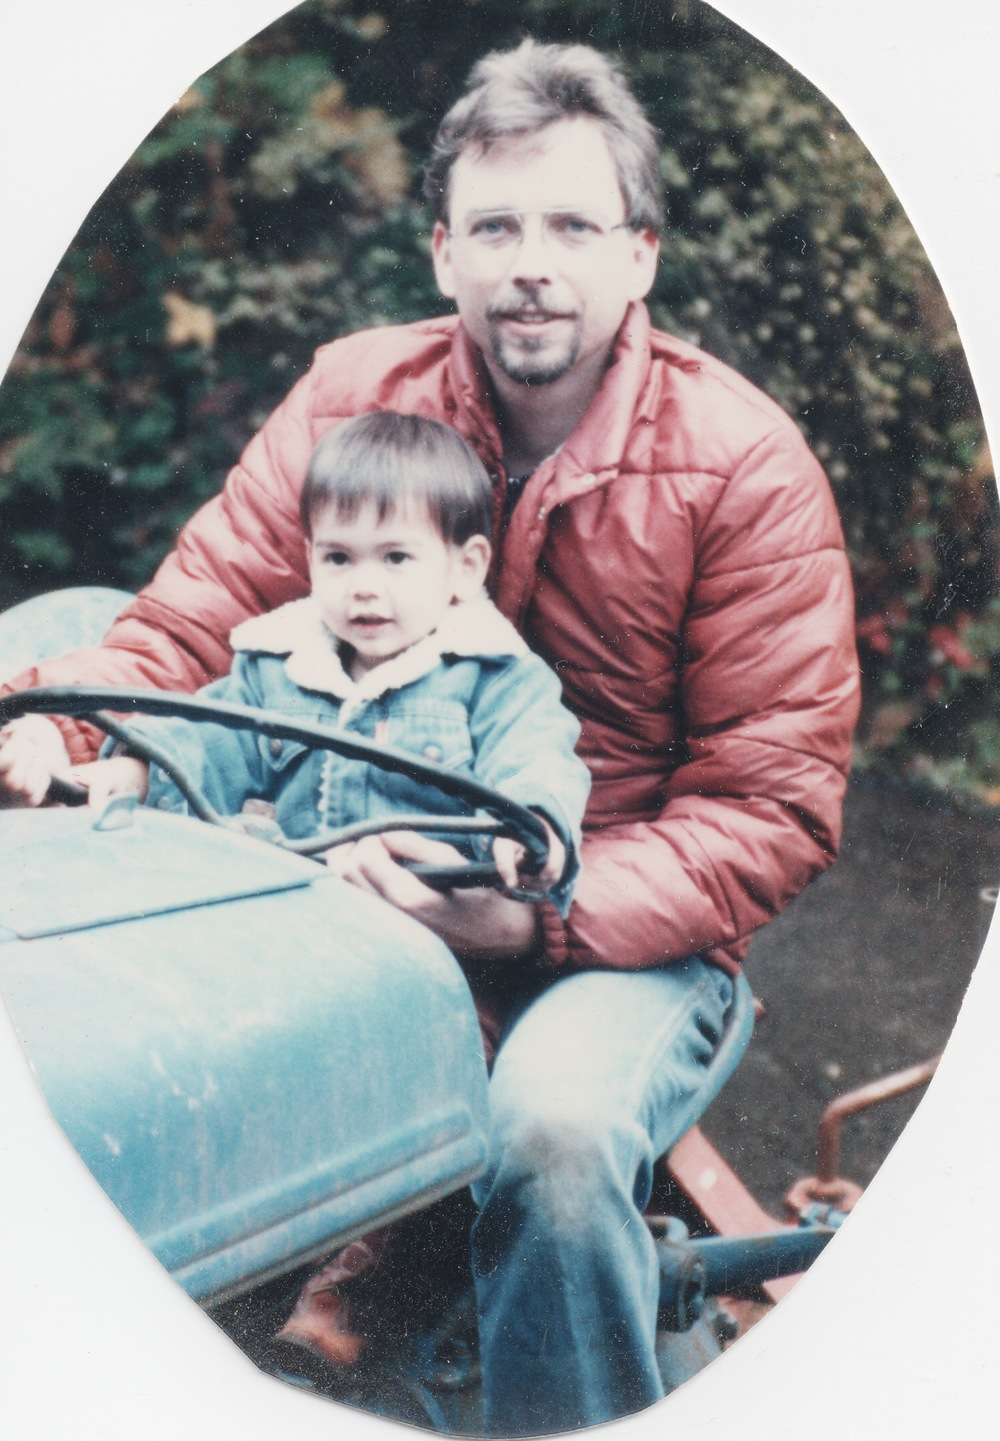 Sage & his dad. Getting an opportunity to drive the tractor!